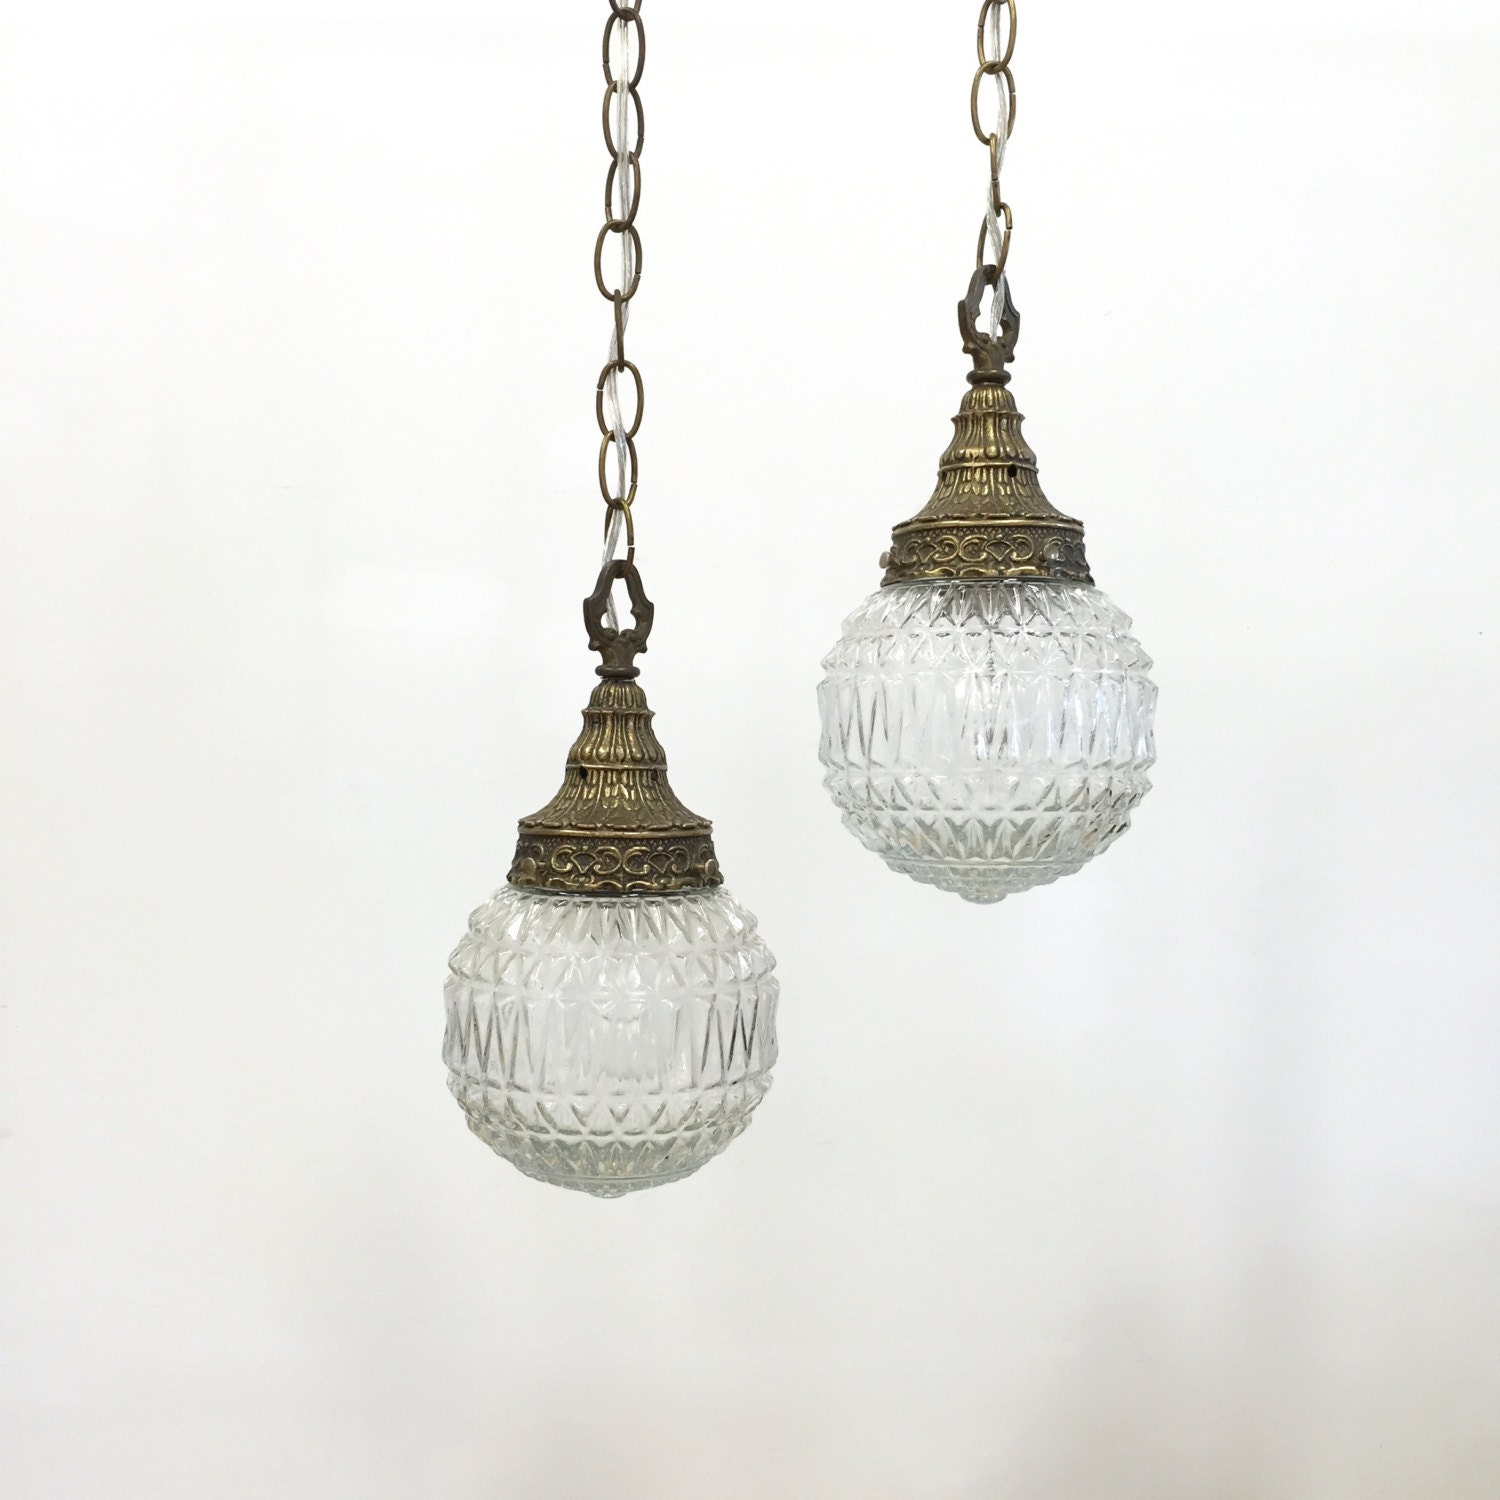 vintage swag l pendant light set in clear pressed